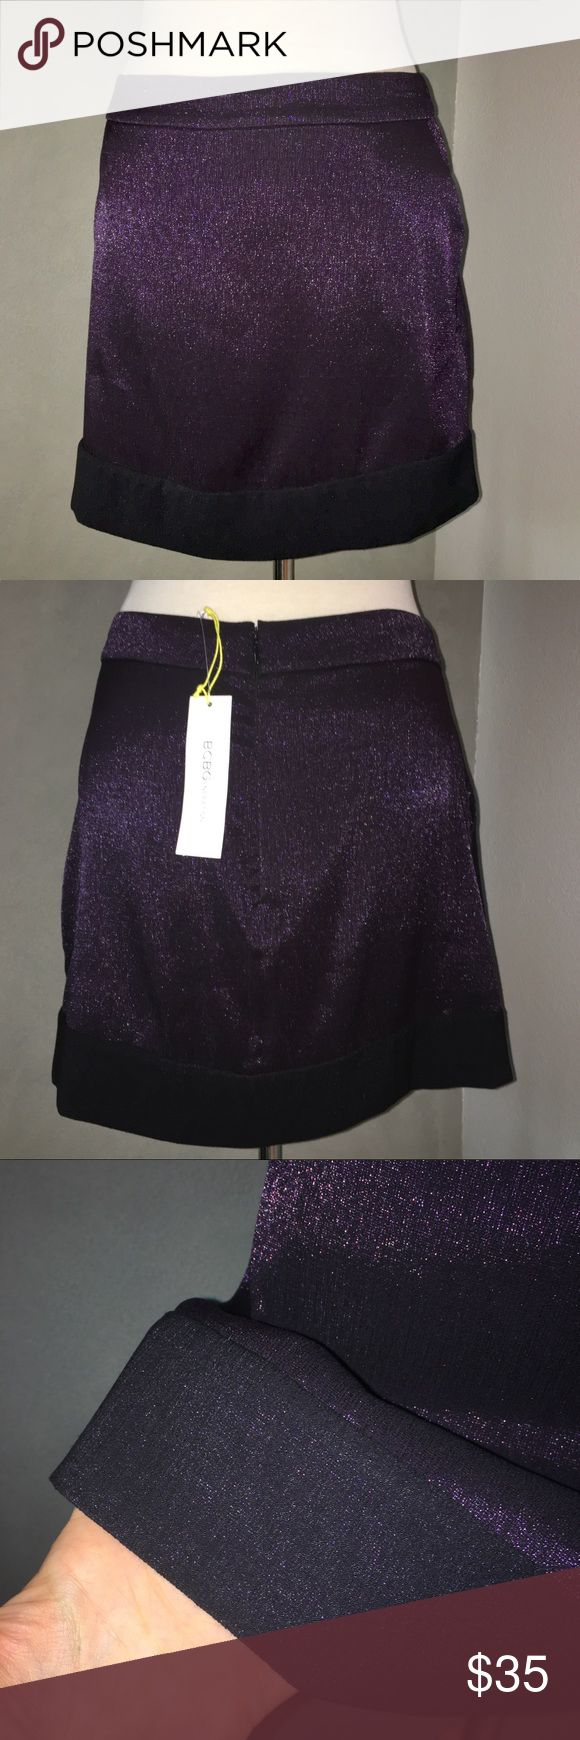 BCBGeneration Sparkly Purple A-Line Skirt This sparkly dark purple A-line skirt is brand BCBGeneration & is a size 10. Two side pockets. The length is 17 inches. Not previously worn & no flaws or defects. BCBGeneration Skirts A-Line or Full